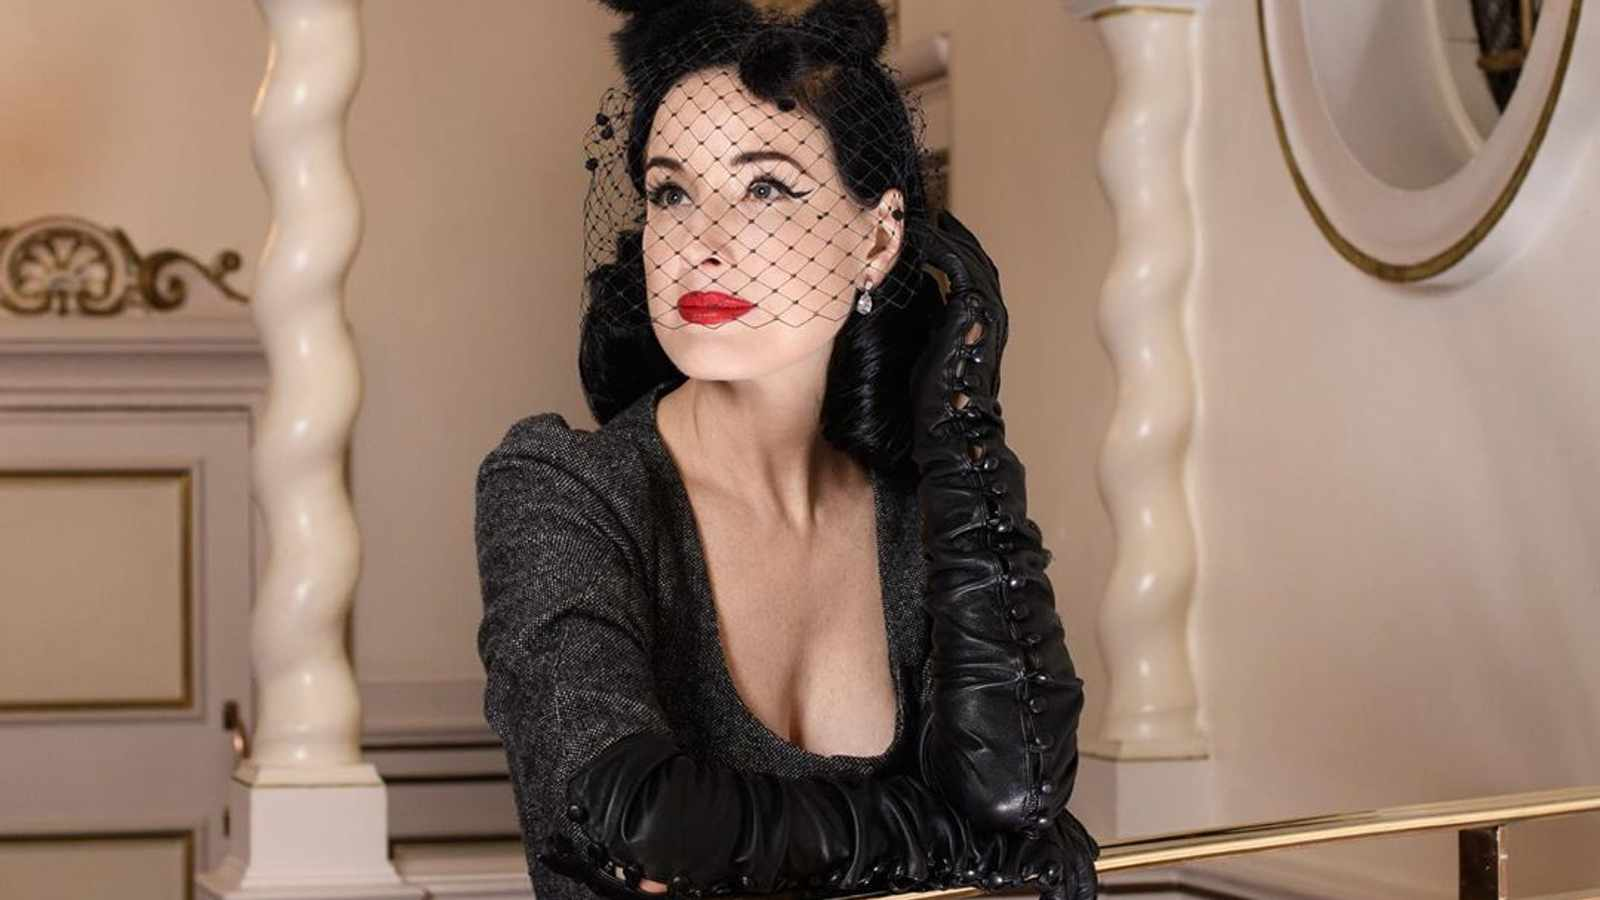 Inside Dita Von Teese's Taxidermy-Filled Home